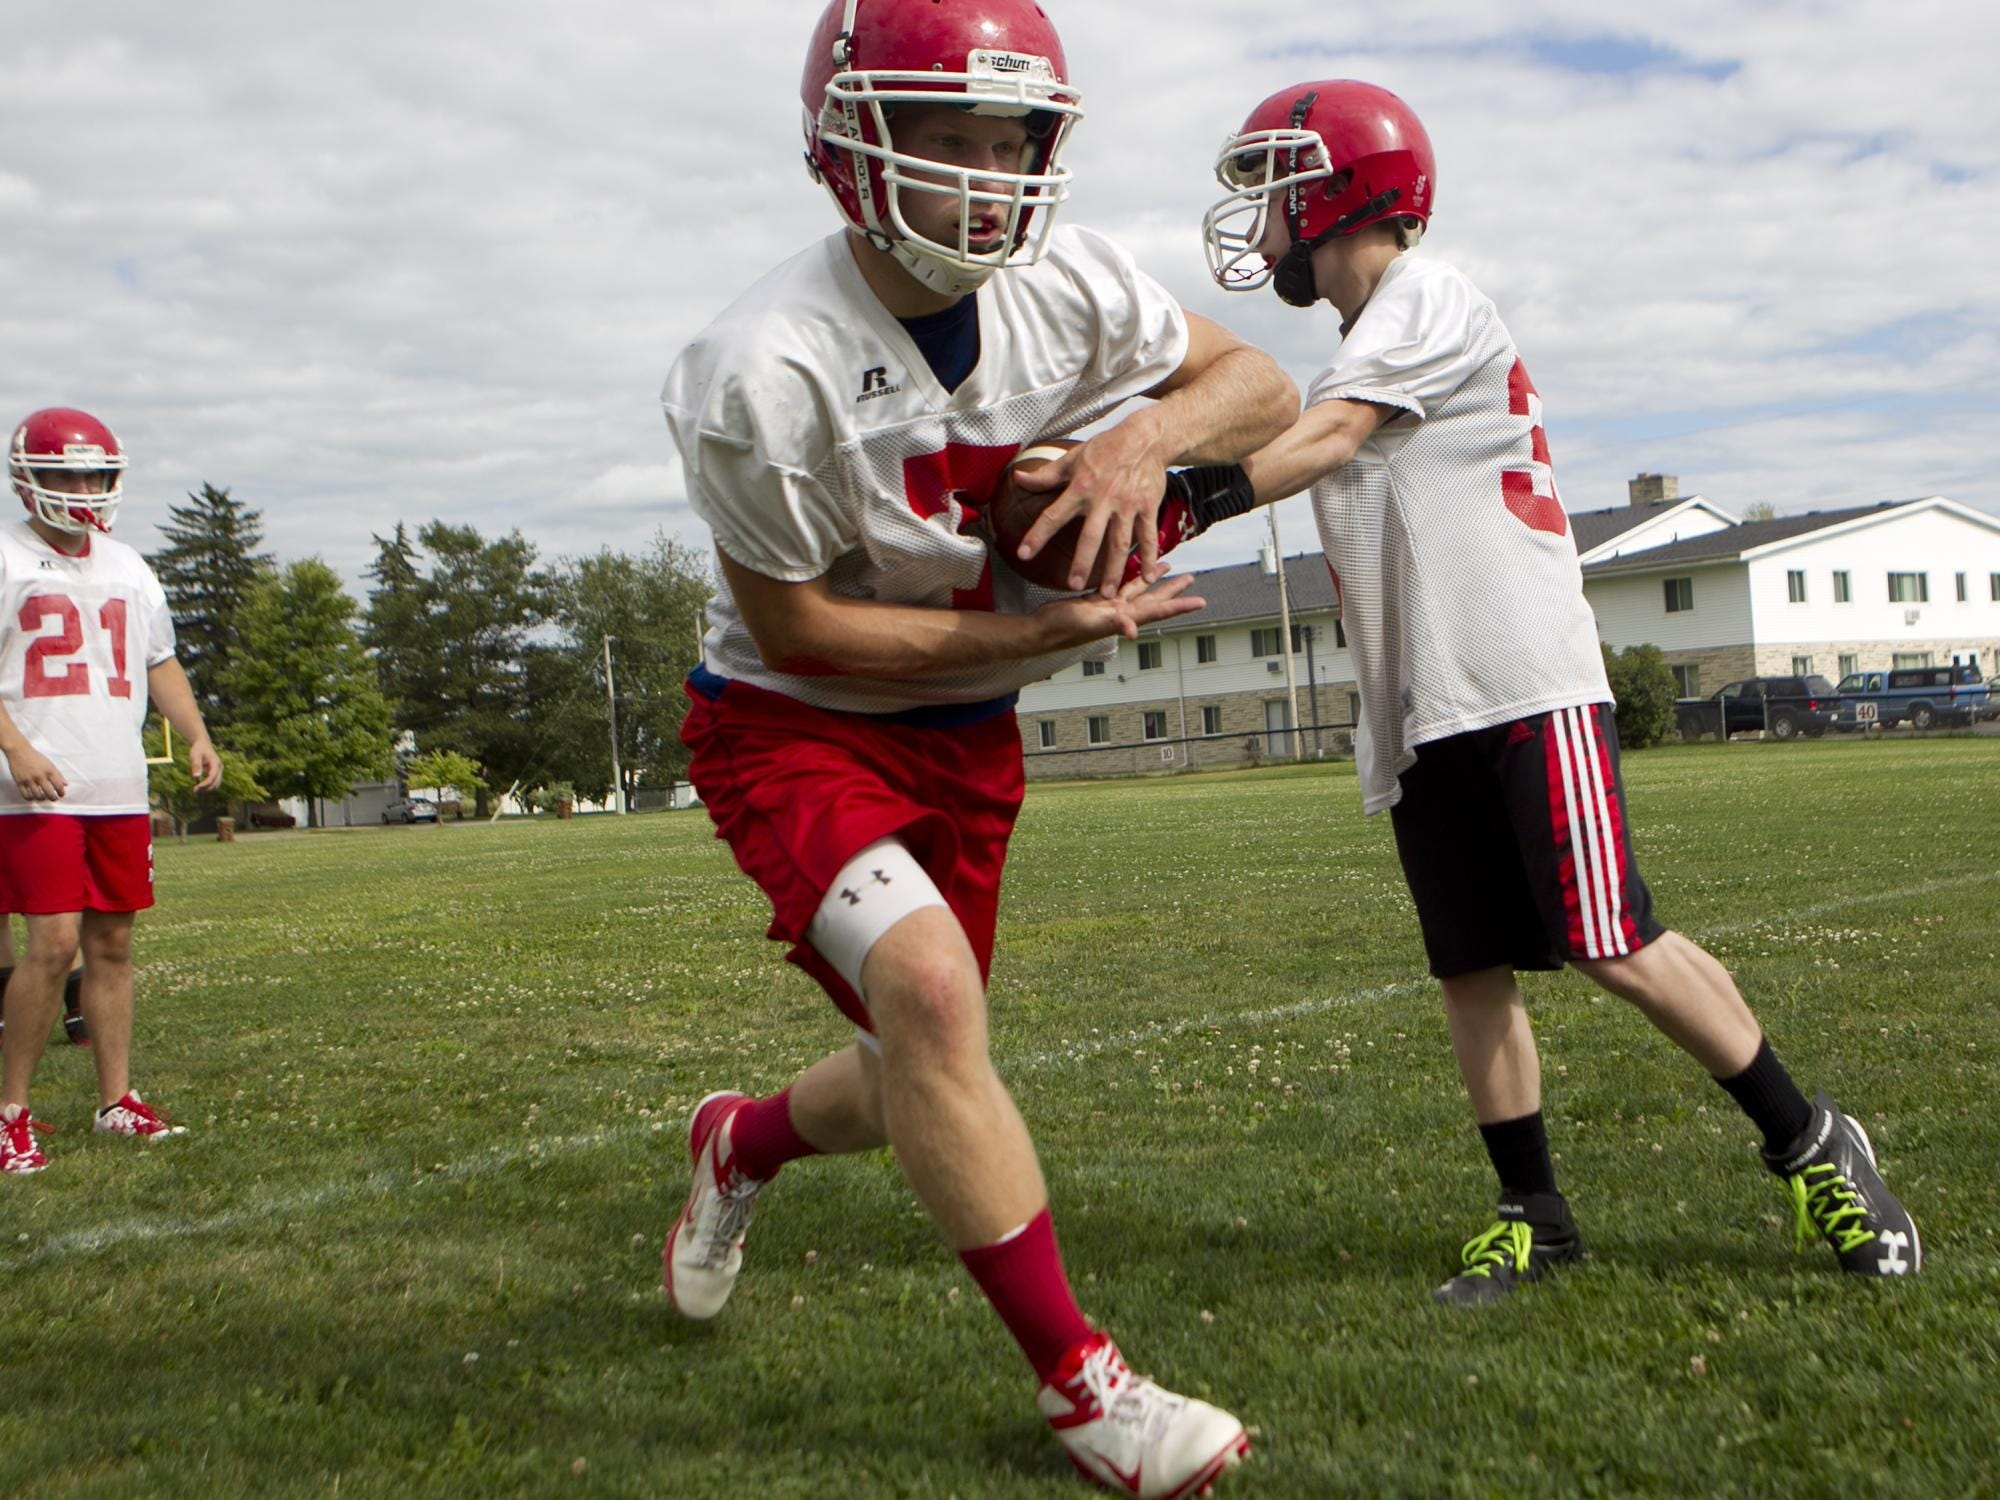 Pacelli football player Chris Shibilski, left, takes the hand off from Ben Lundgren, right, during the first day of football practice at Pacelli High School, Aug. 4.